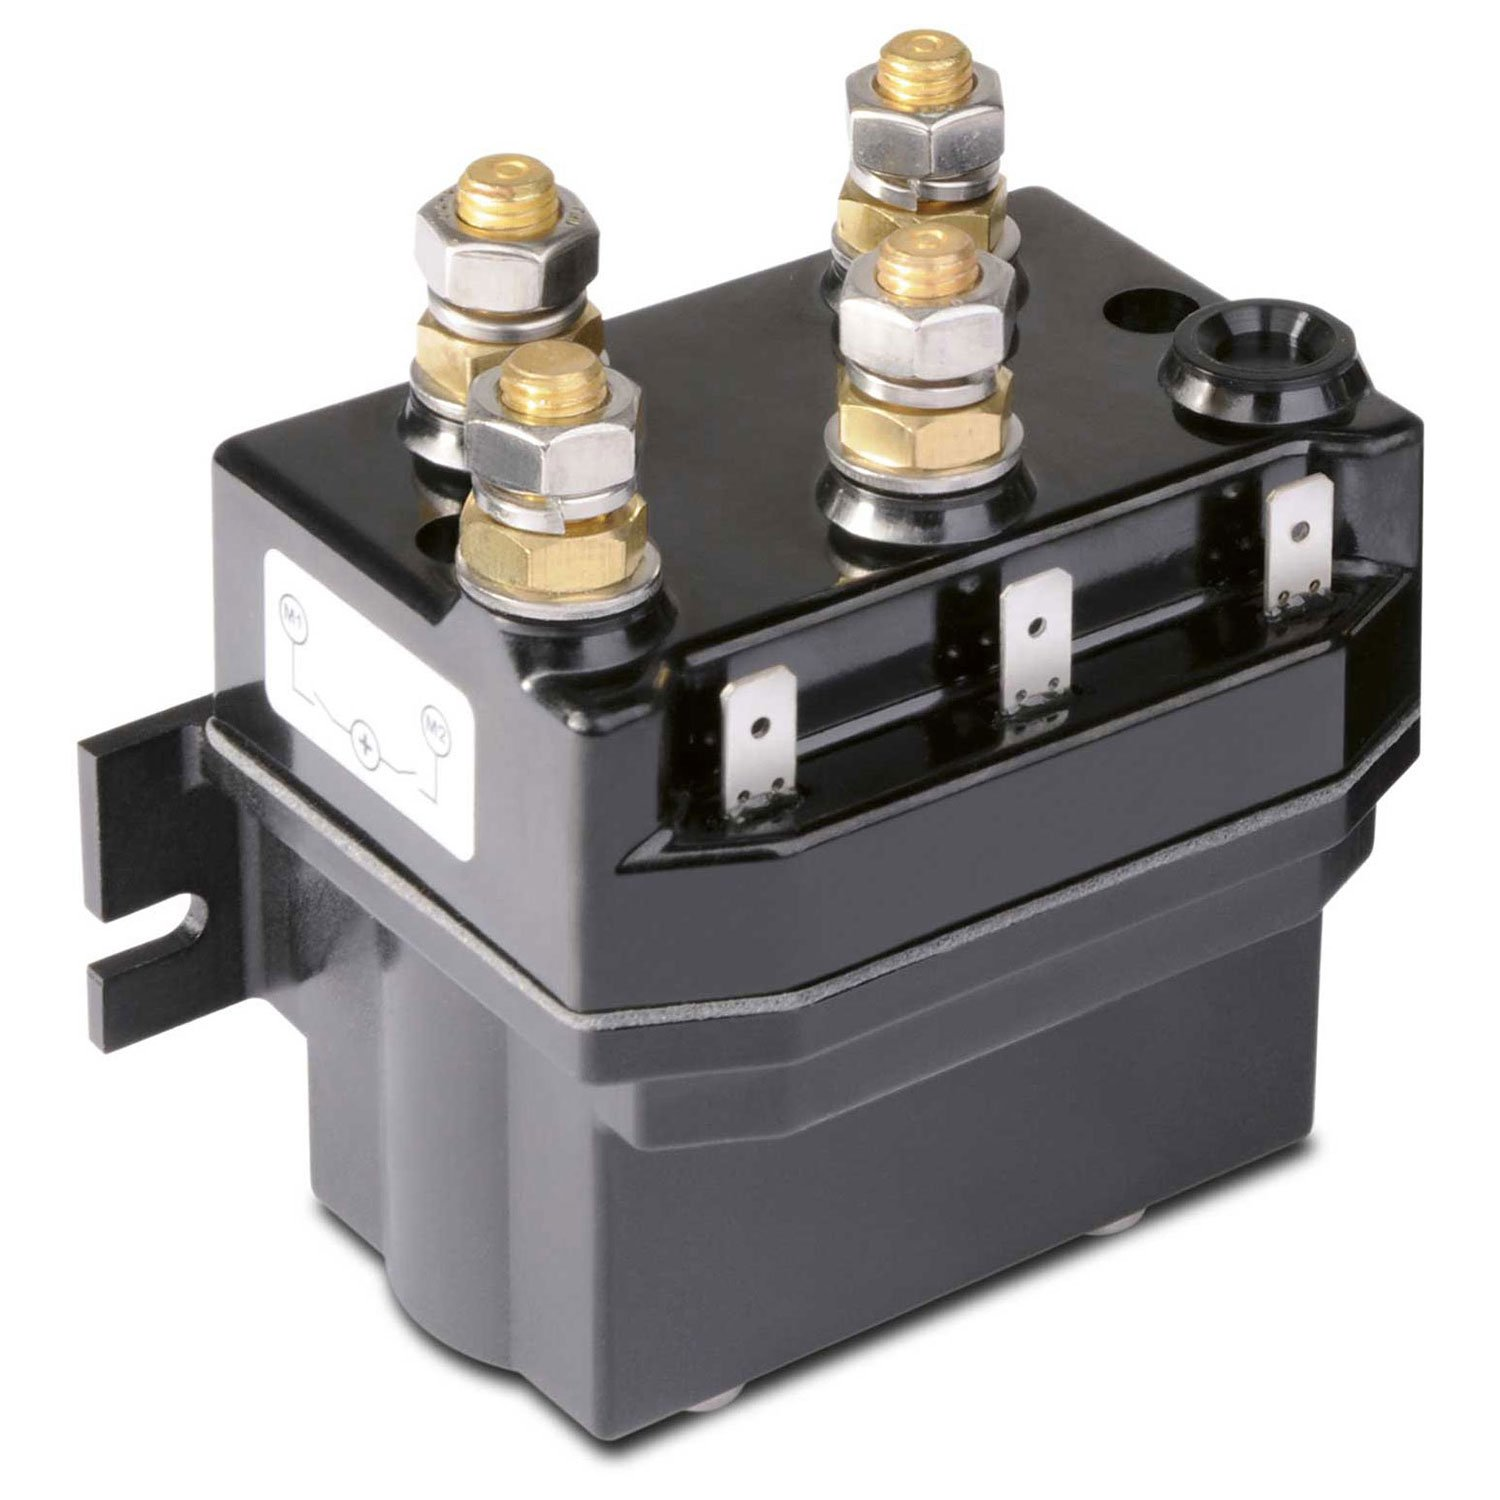 Quick T6415-24, Reverse Solenoid 4-Pull for 2-Pull Motor, 150A 24V IP66